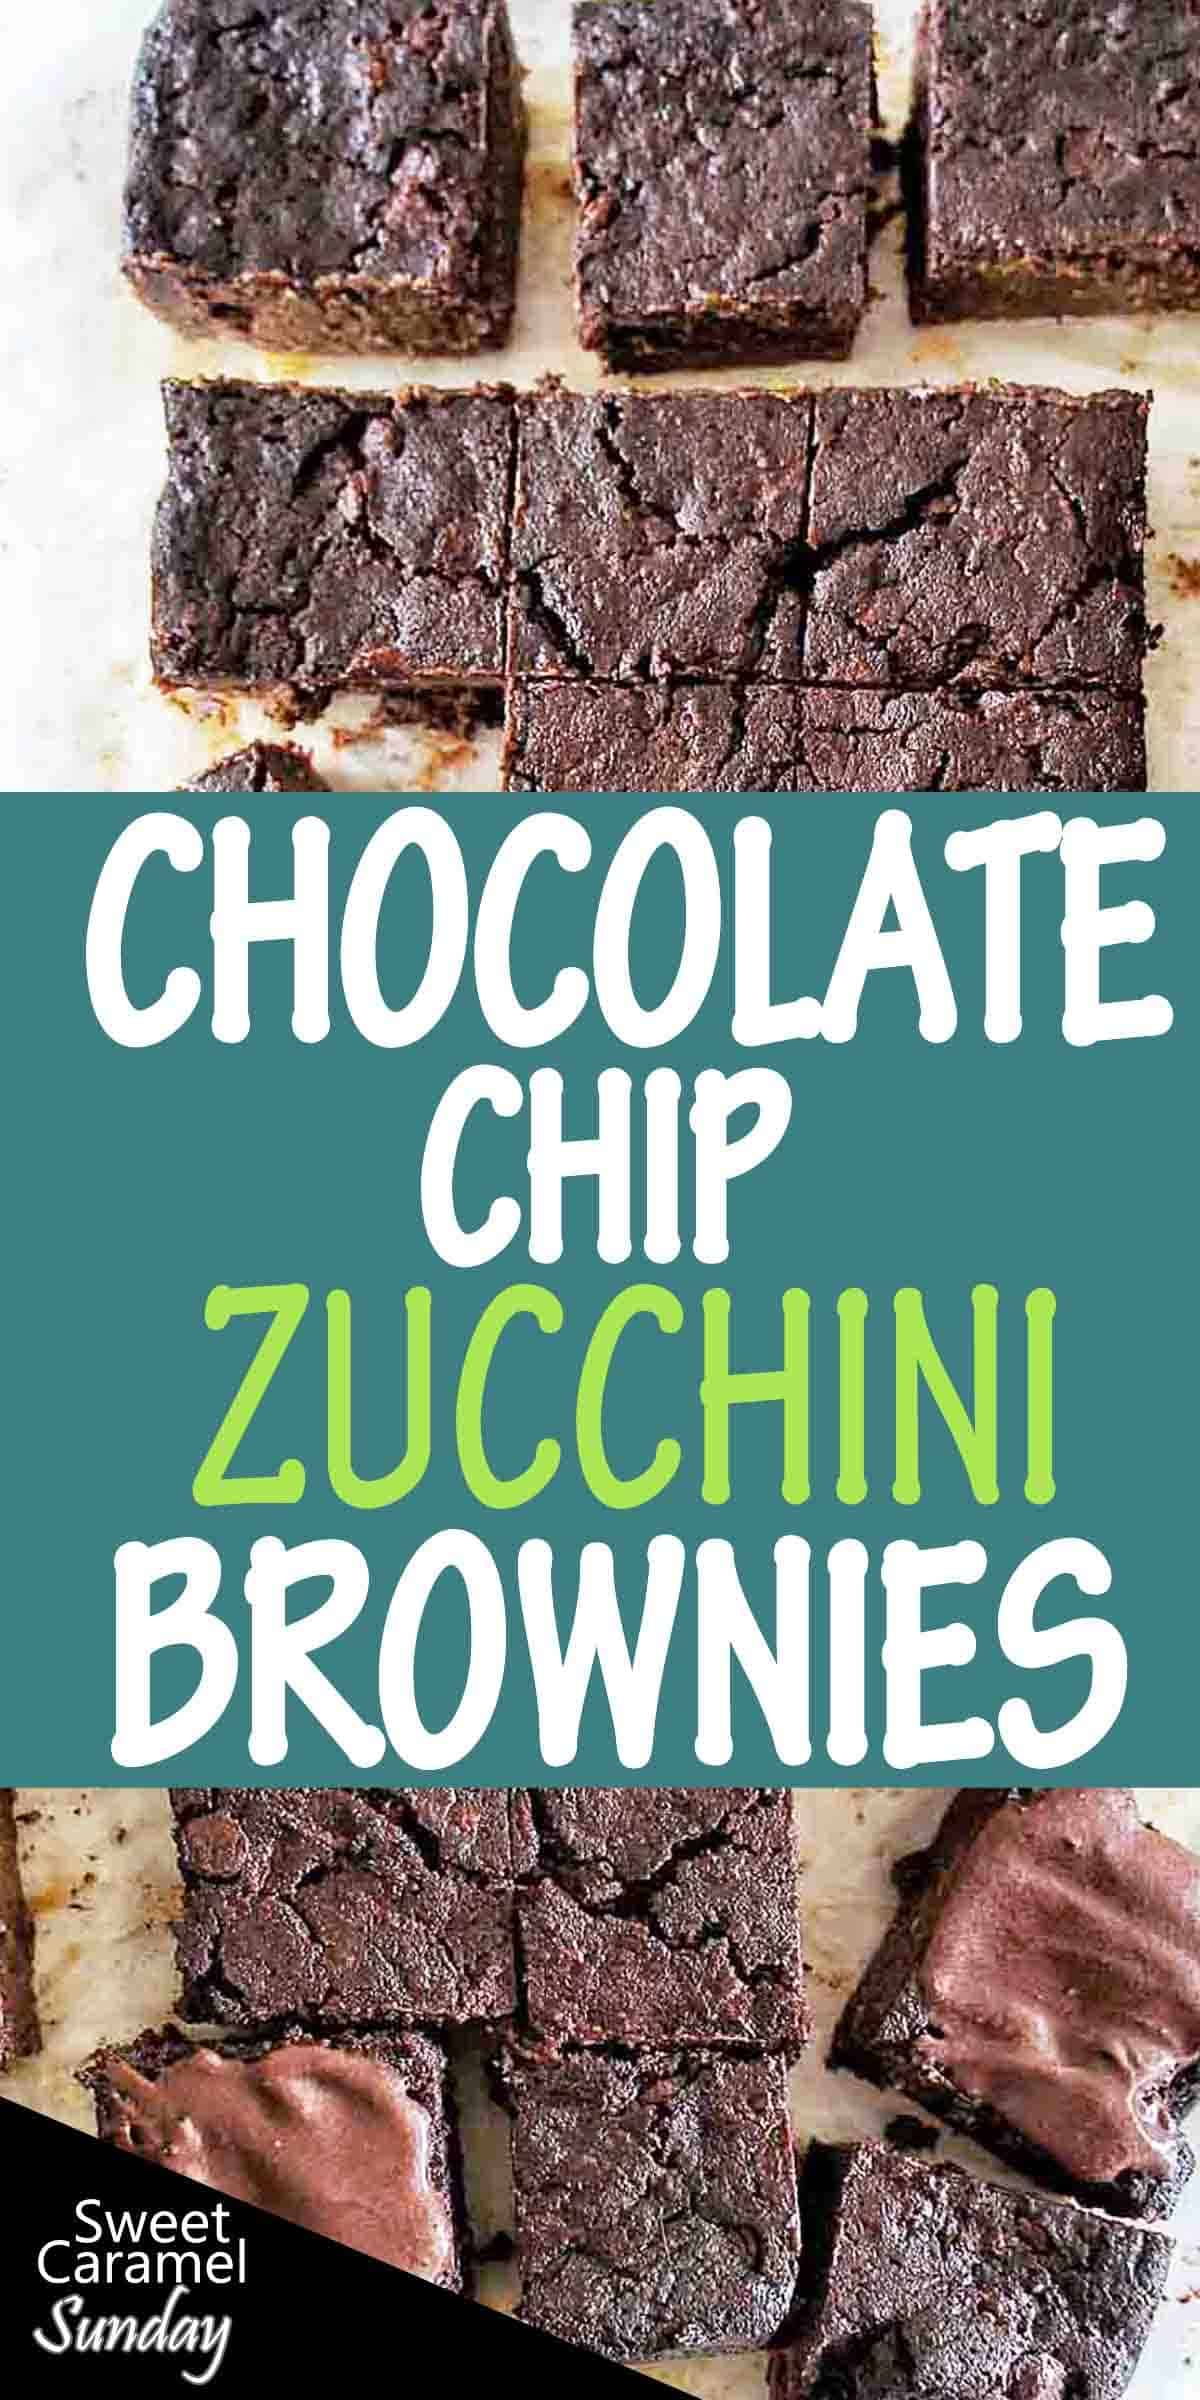 Chocolate Chip Zucchini Brownies with text over lay